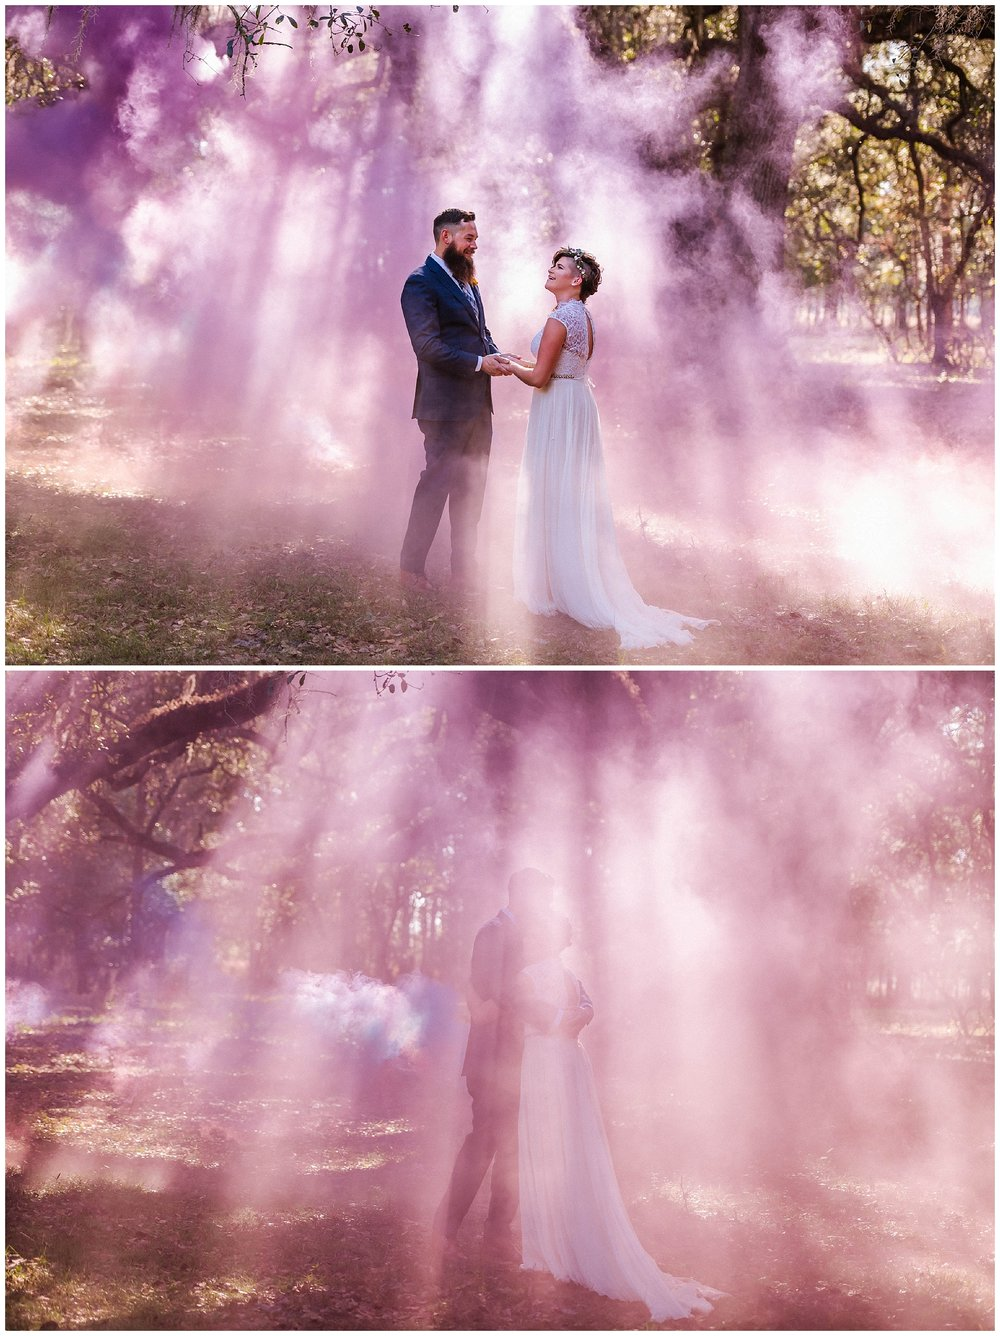 magical-outdoor-florida-wedding-smoke-bombs-flowers-crown-beard_0015.jpg